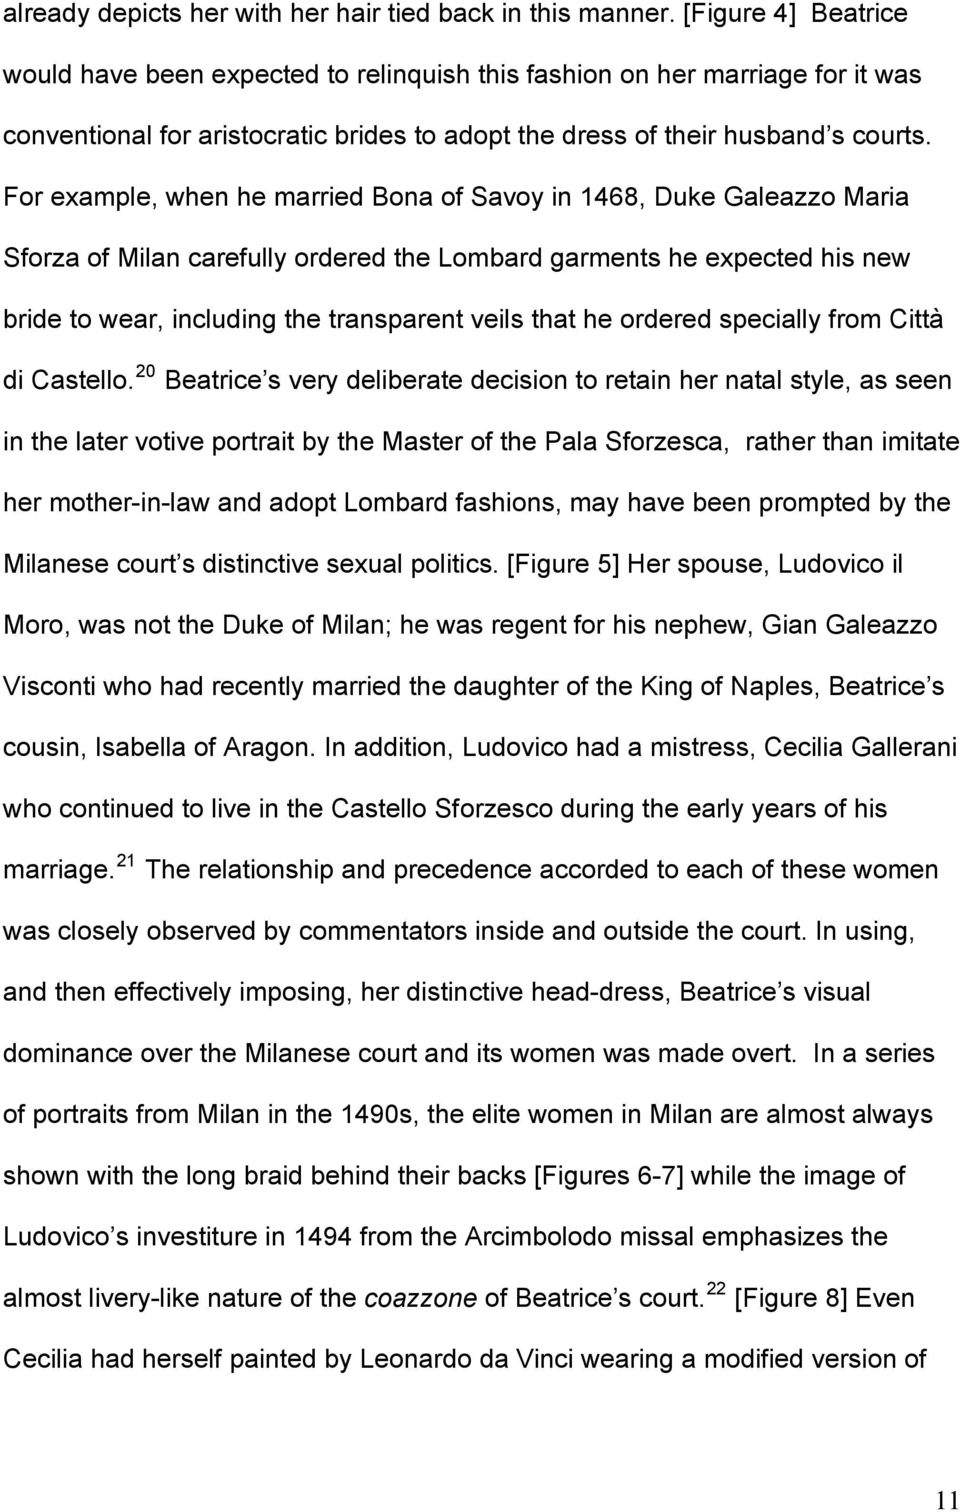 For example, when he married Bona of Savoy in 1468, Duke Galeazzo Maria Sforza of Milan carefully ordered the Lombard garments he expected his new bride to wear, including the transparent veils that